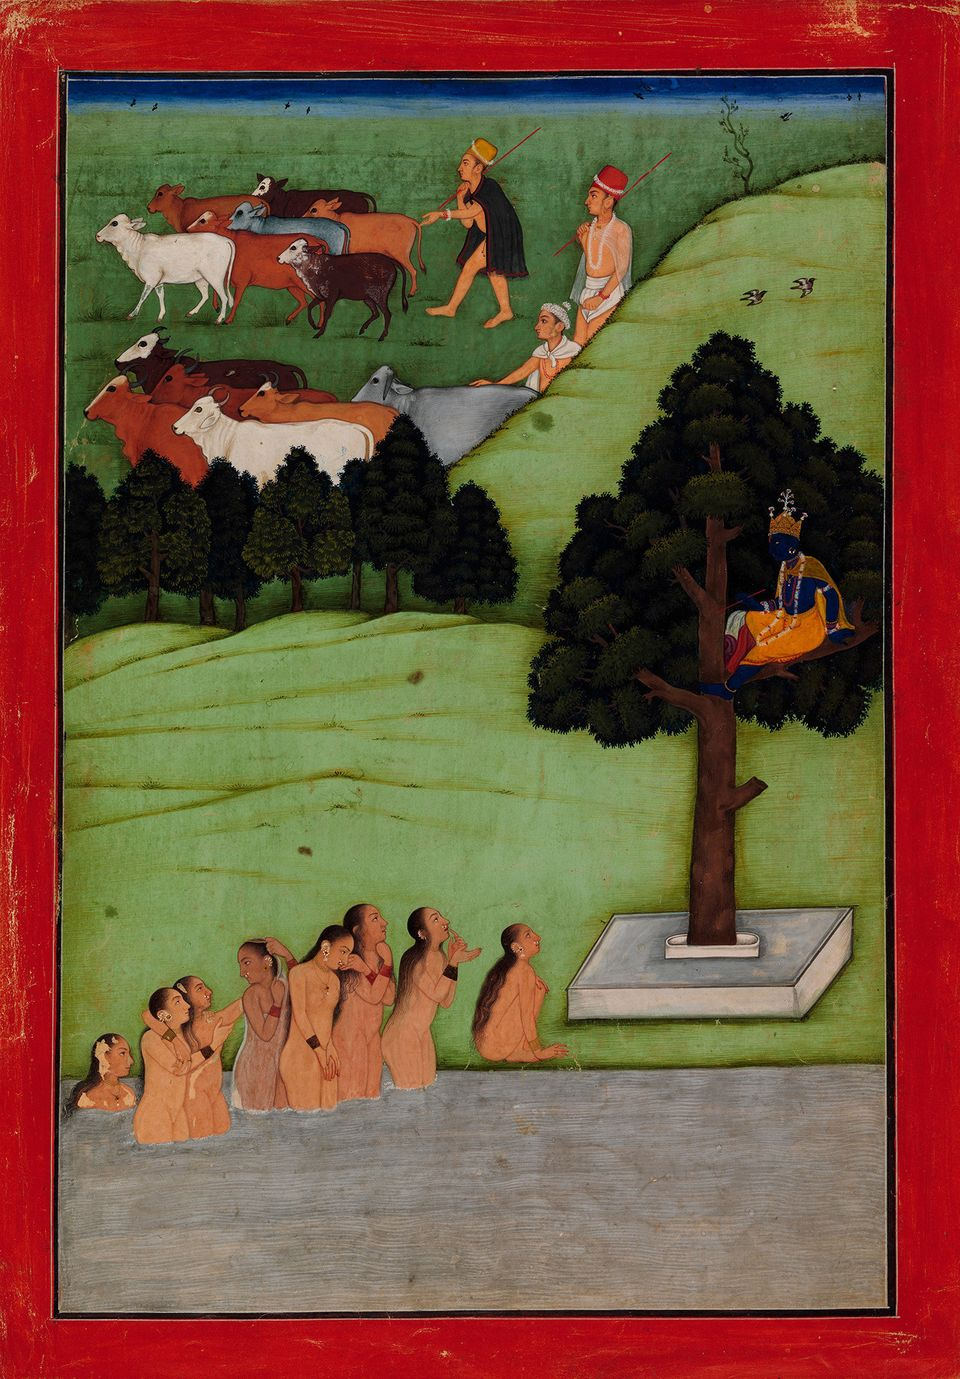 """""""Krishna Steals the Clothing of the Gopis (CowMaidens).""""Attributed to the artist known as the Early Master at&nbs"""